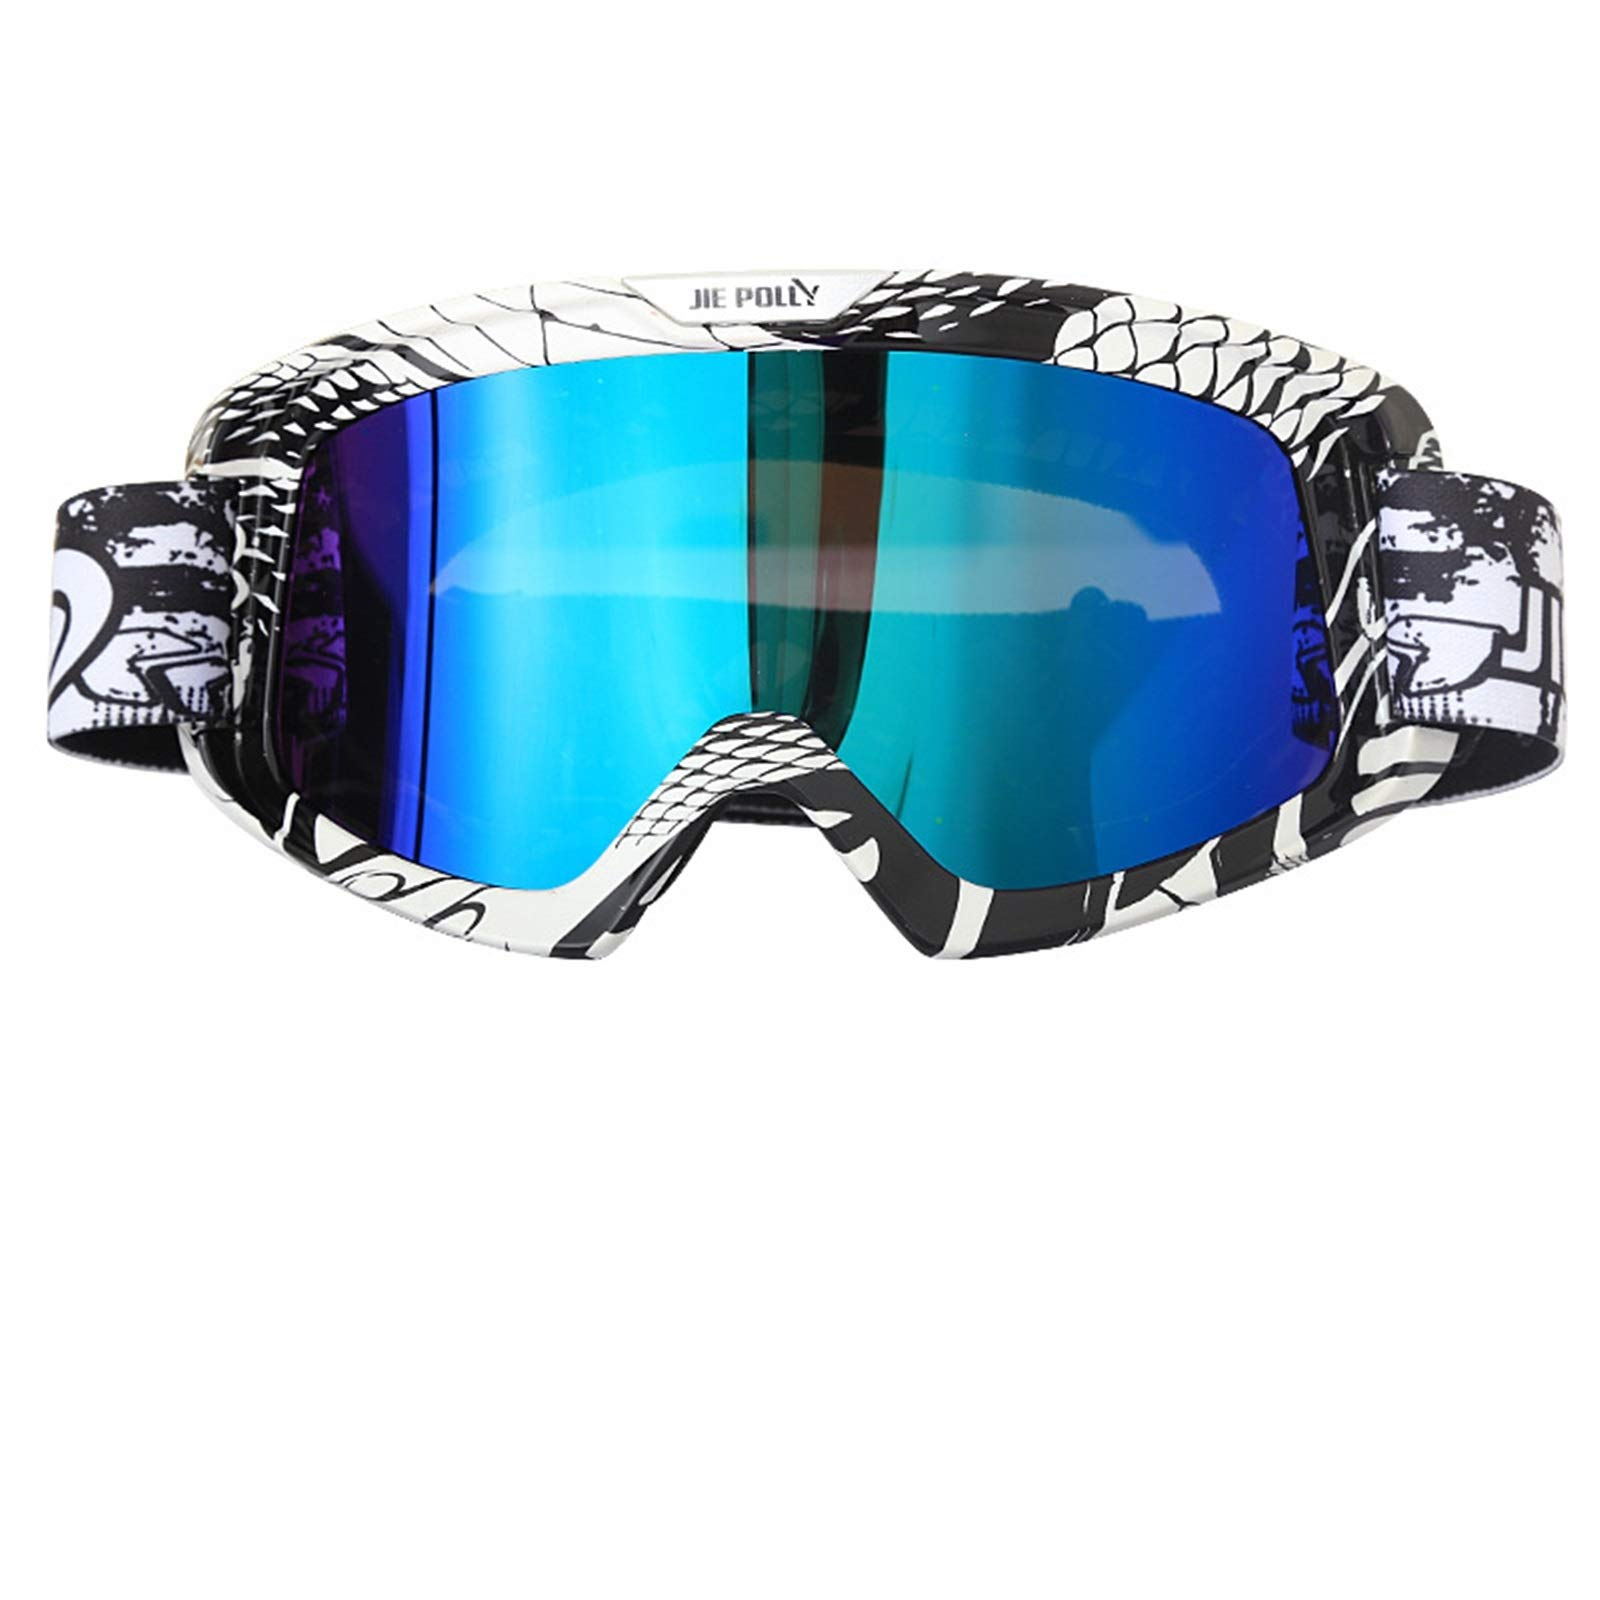 Adisaer Safety Sunglasses Motorcycle Equipment Off-Road ski Sand-Proof Goggles Colorful A04 for Adults